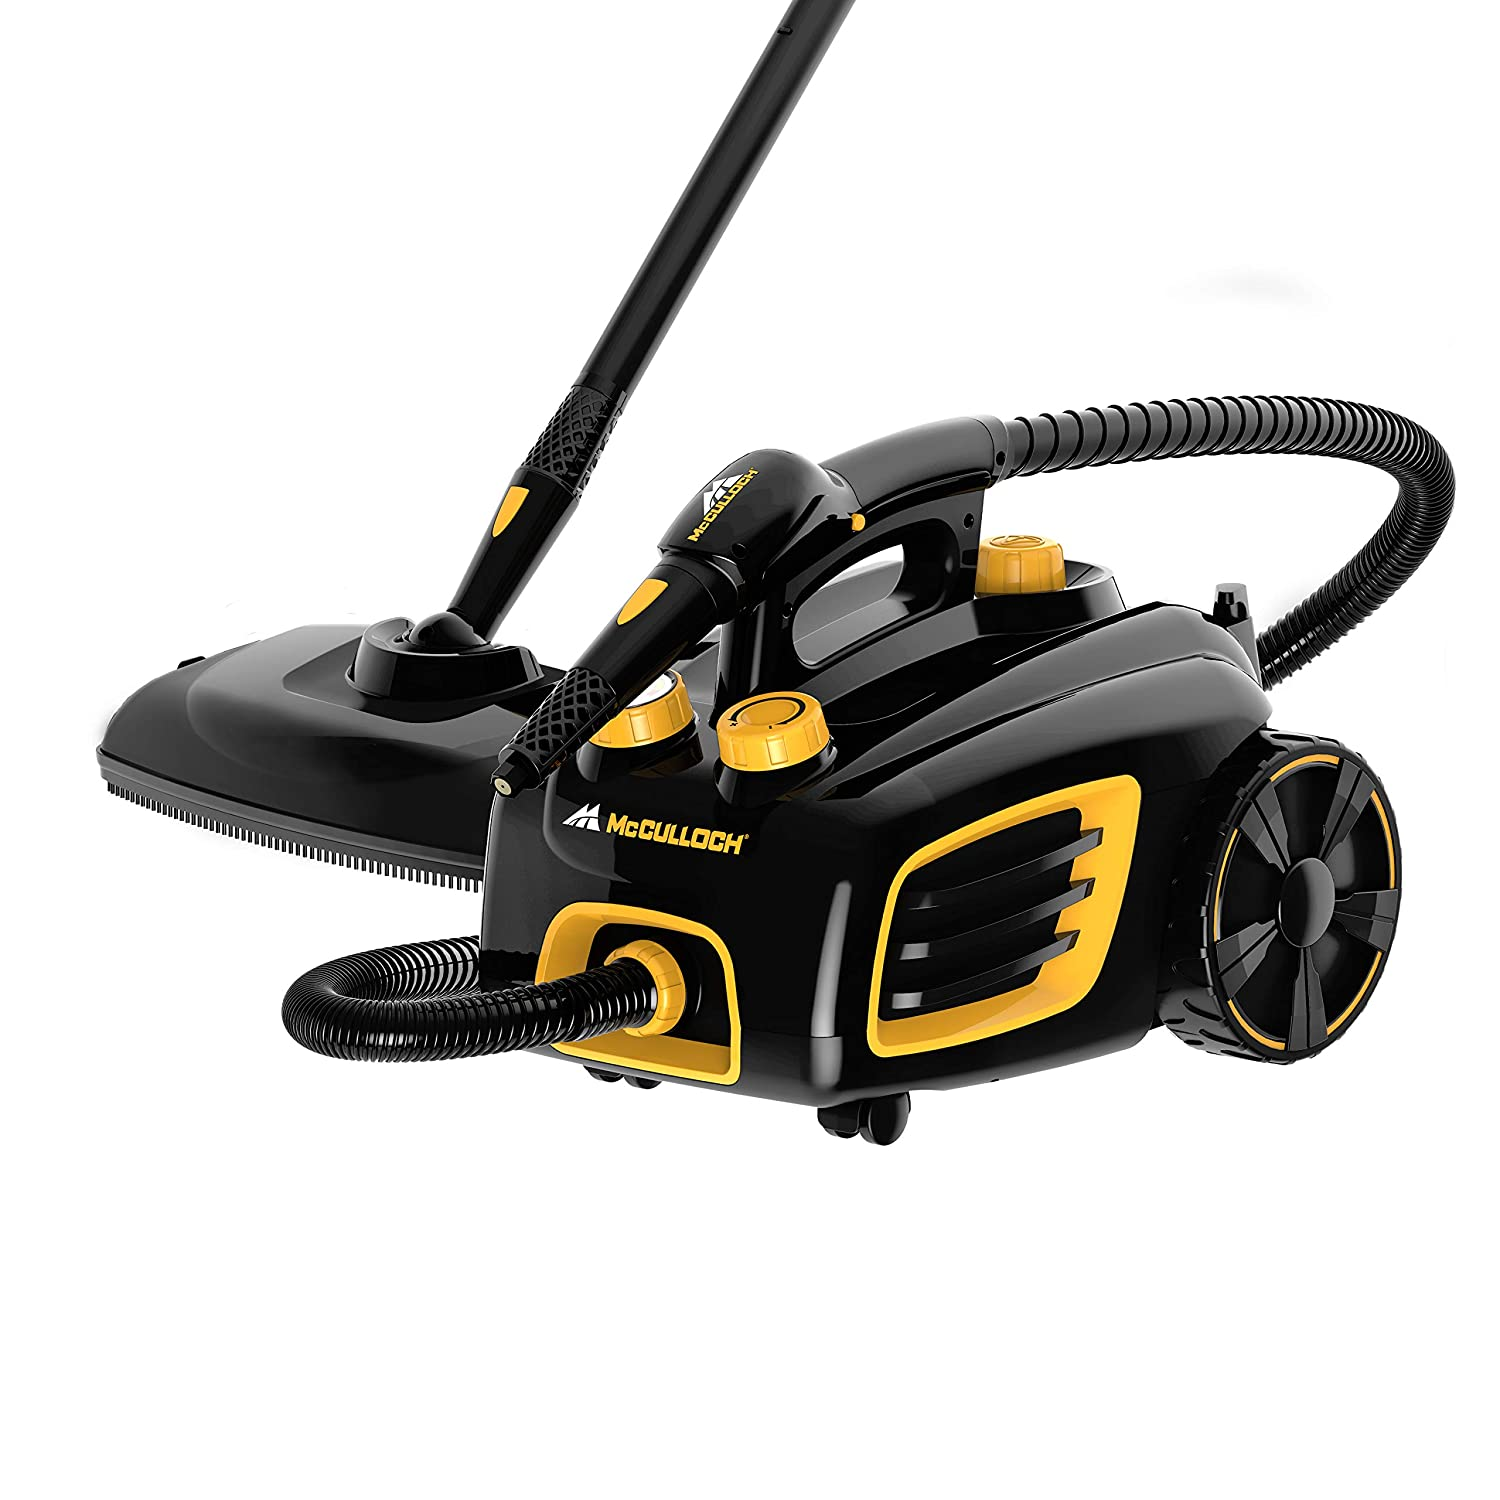 The Best steam cleaner - Our pick